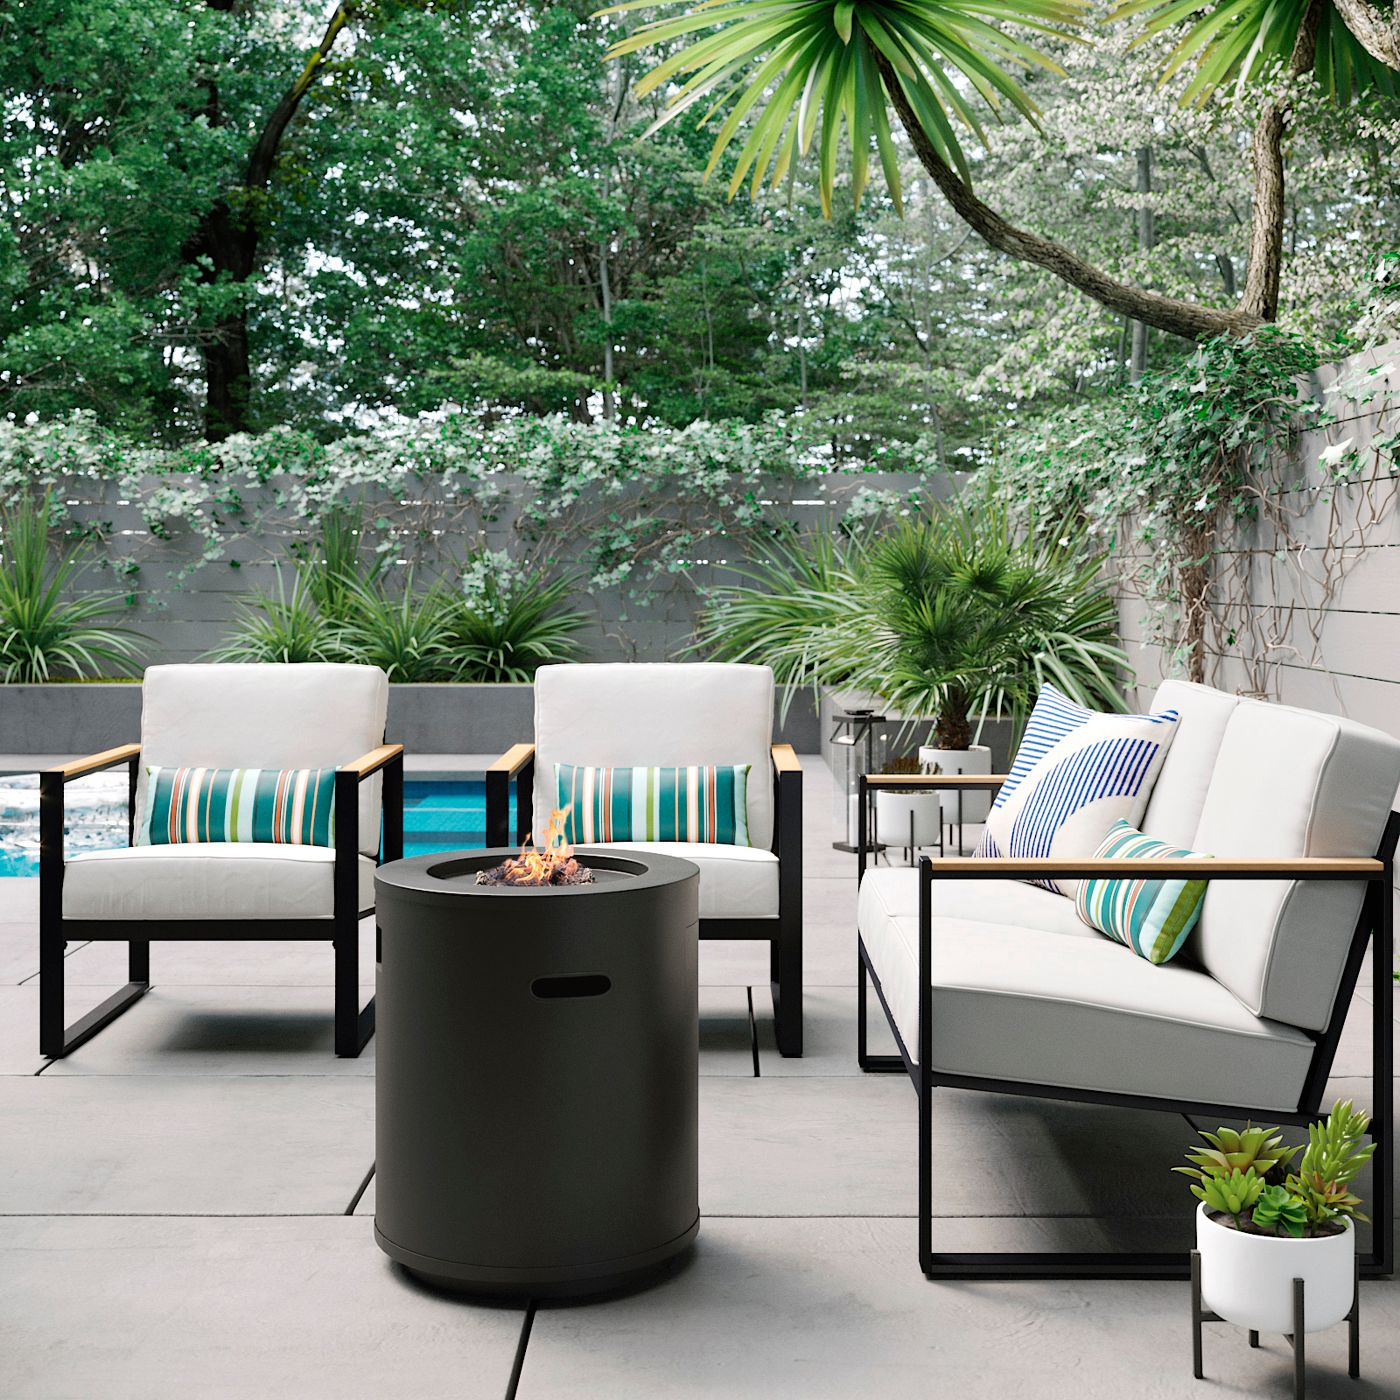 target henning patio furniture